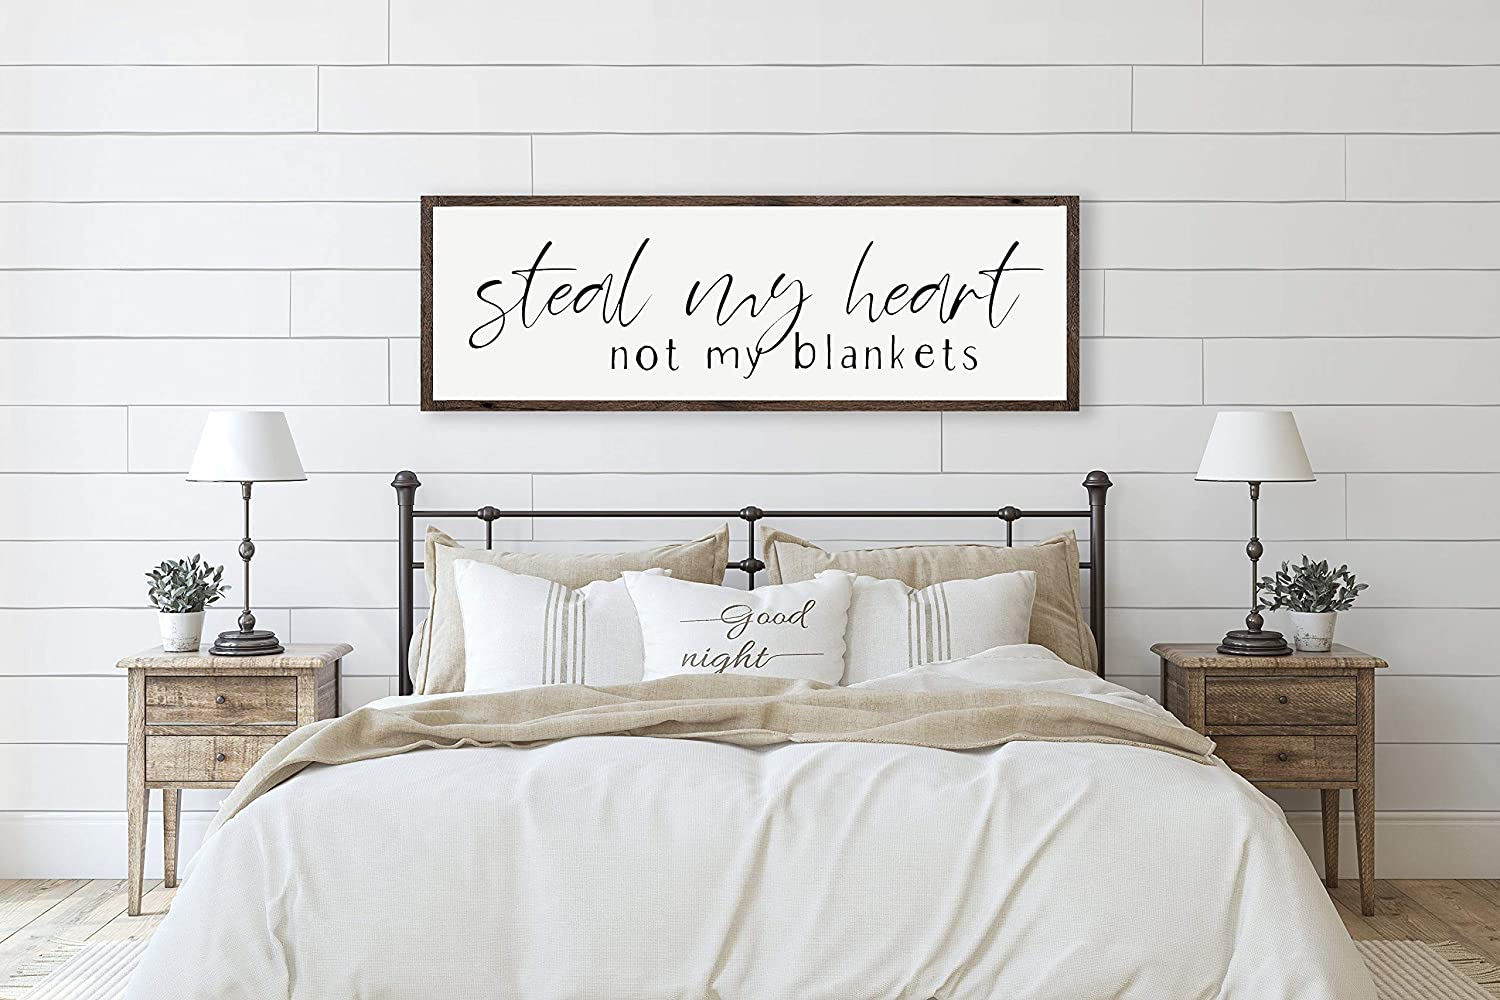 DKISEE Steal My Heart Not My Blankets, Over The Bed Sign, Master Bedroom  Decor, Bedroom Sign, Bedroom Wall Decor, Above Bed Sign, Wall Art 15.15x15